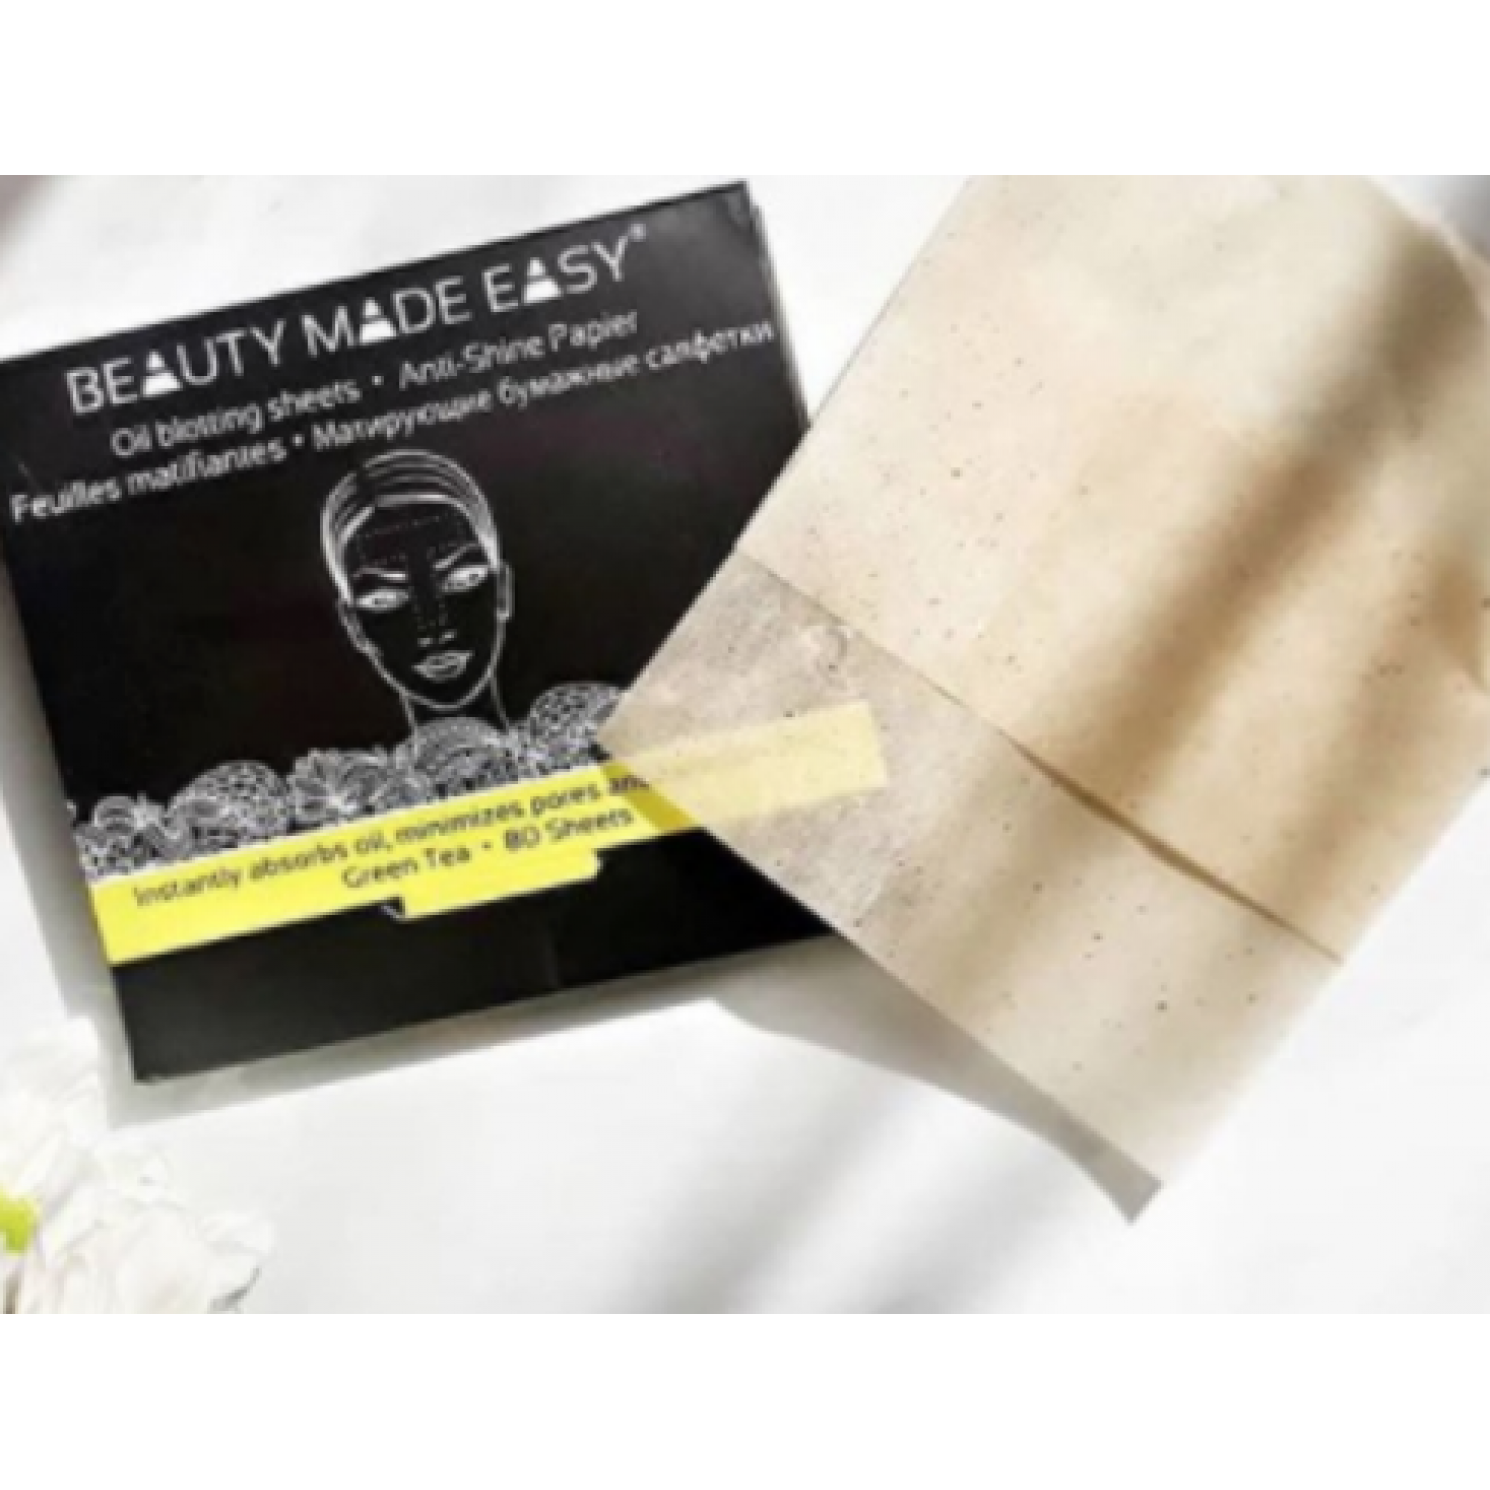 Papeles Matificantes y Absorbentes Beauty Made Easy 80 und.